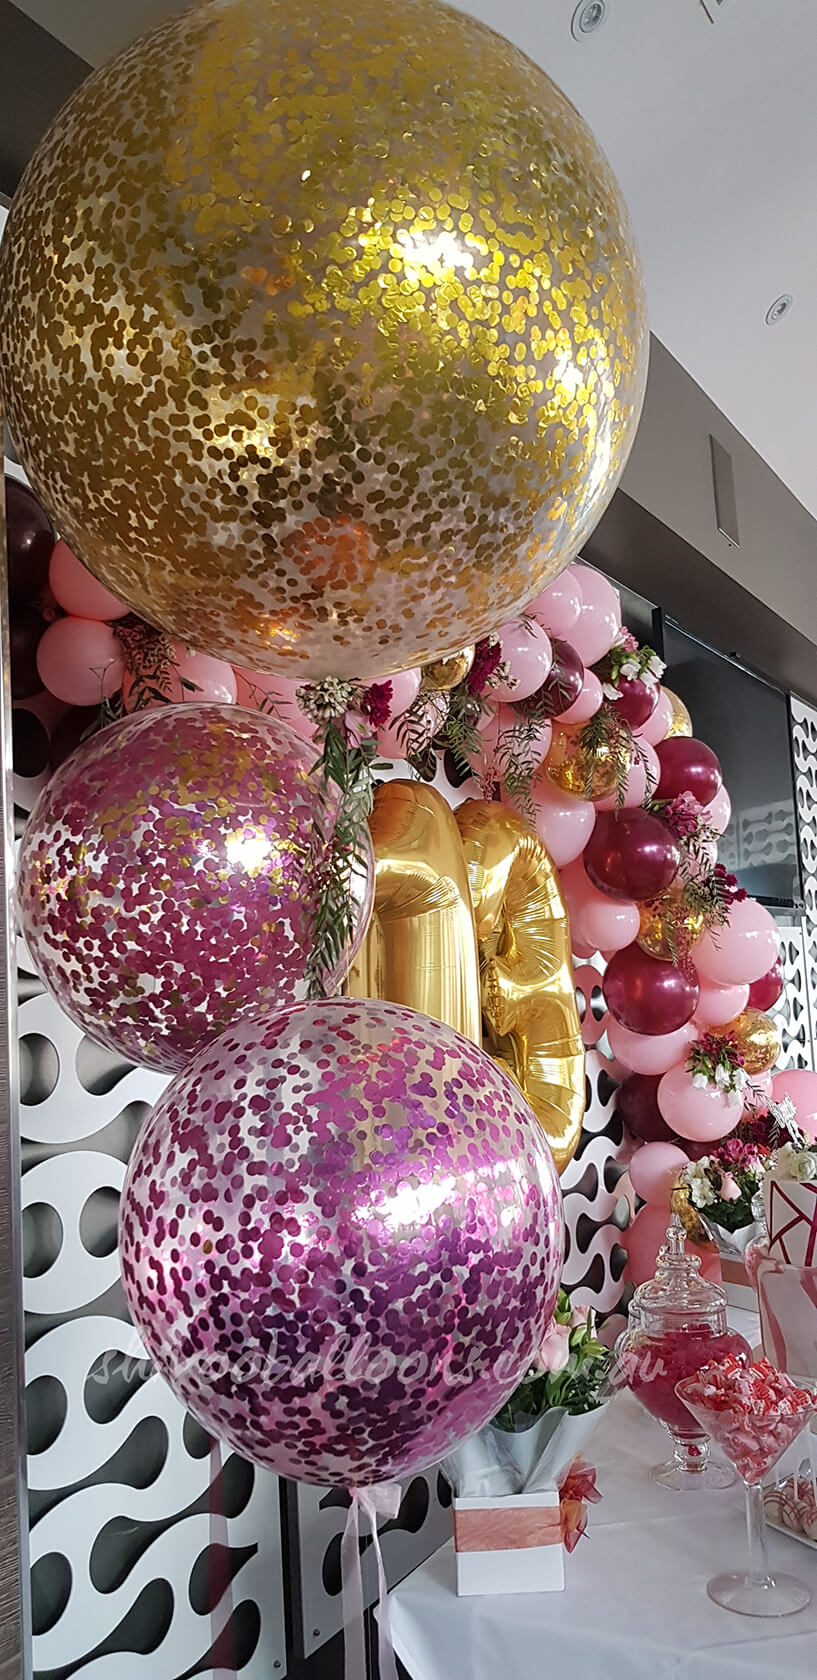 Glittery Balloons - see our events - creating designs for events - shivoo balloons and decor specialists in coburg north